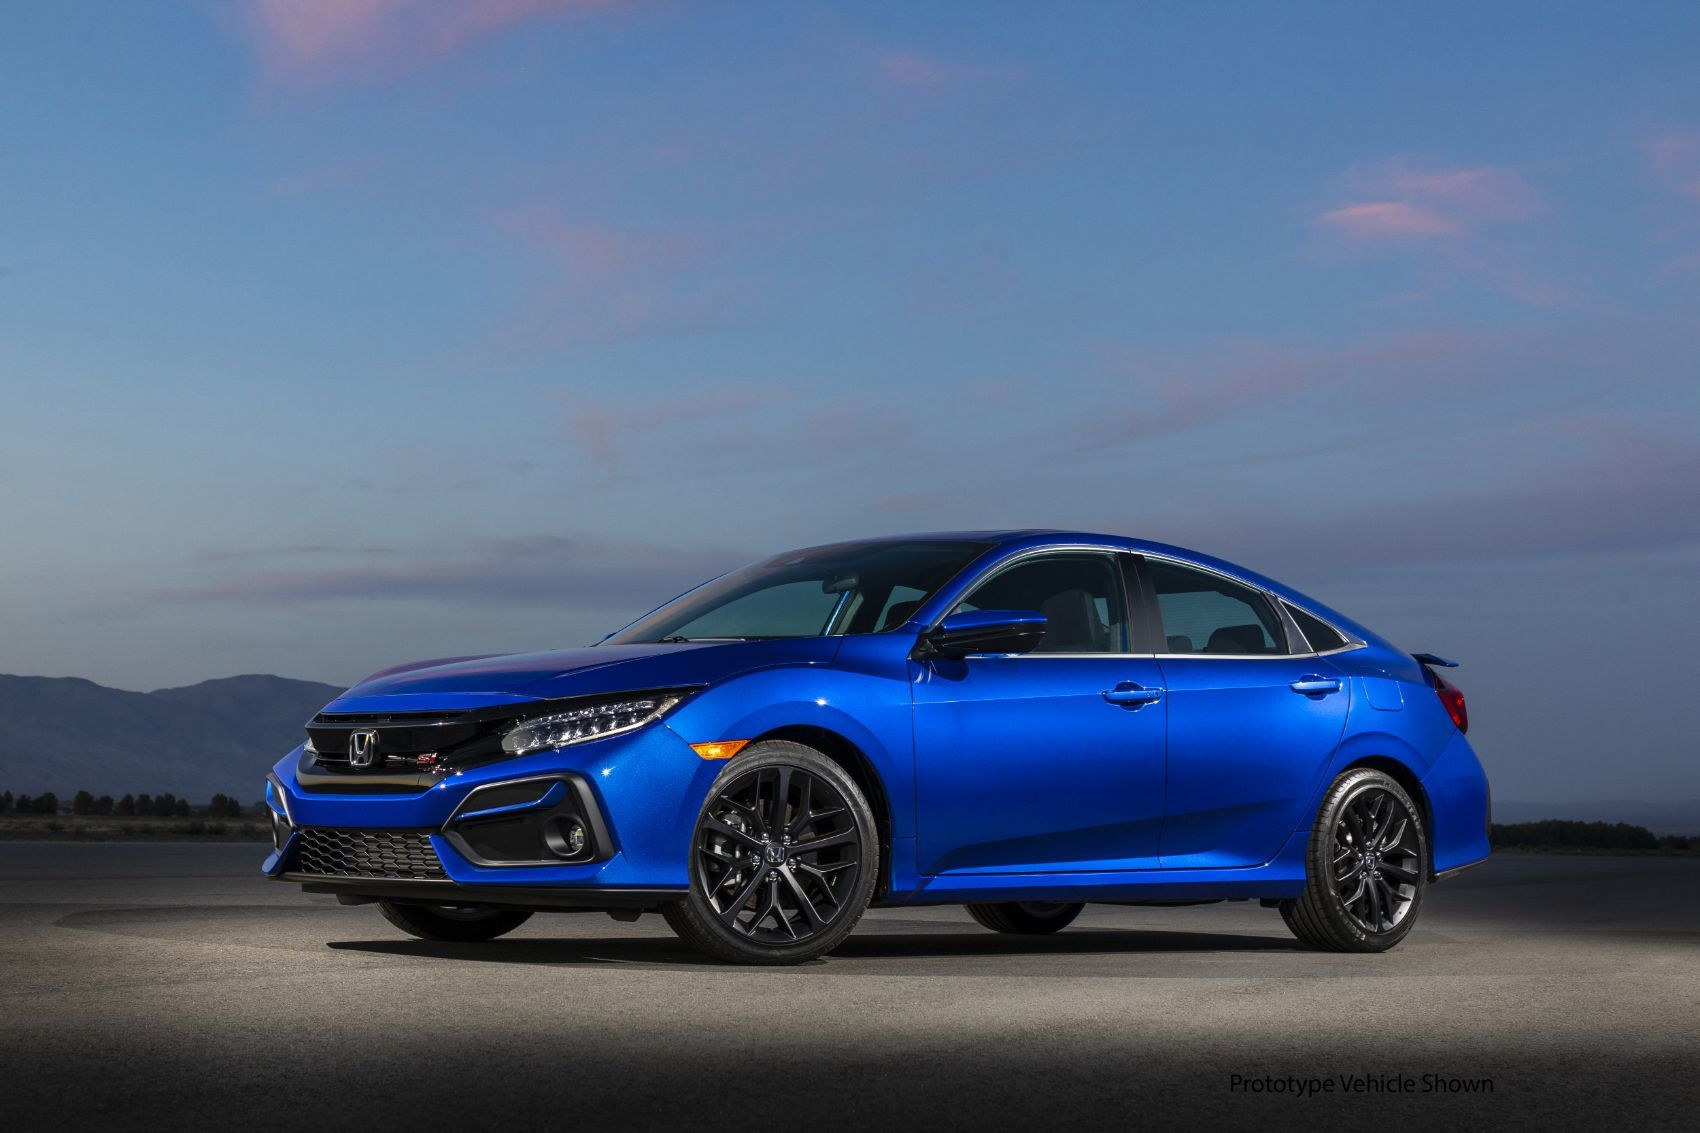 2020 Honda Civic Si: Worthy Type R Alternative Offers More ...